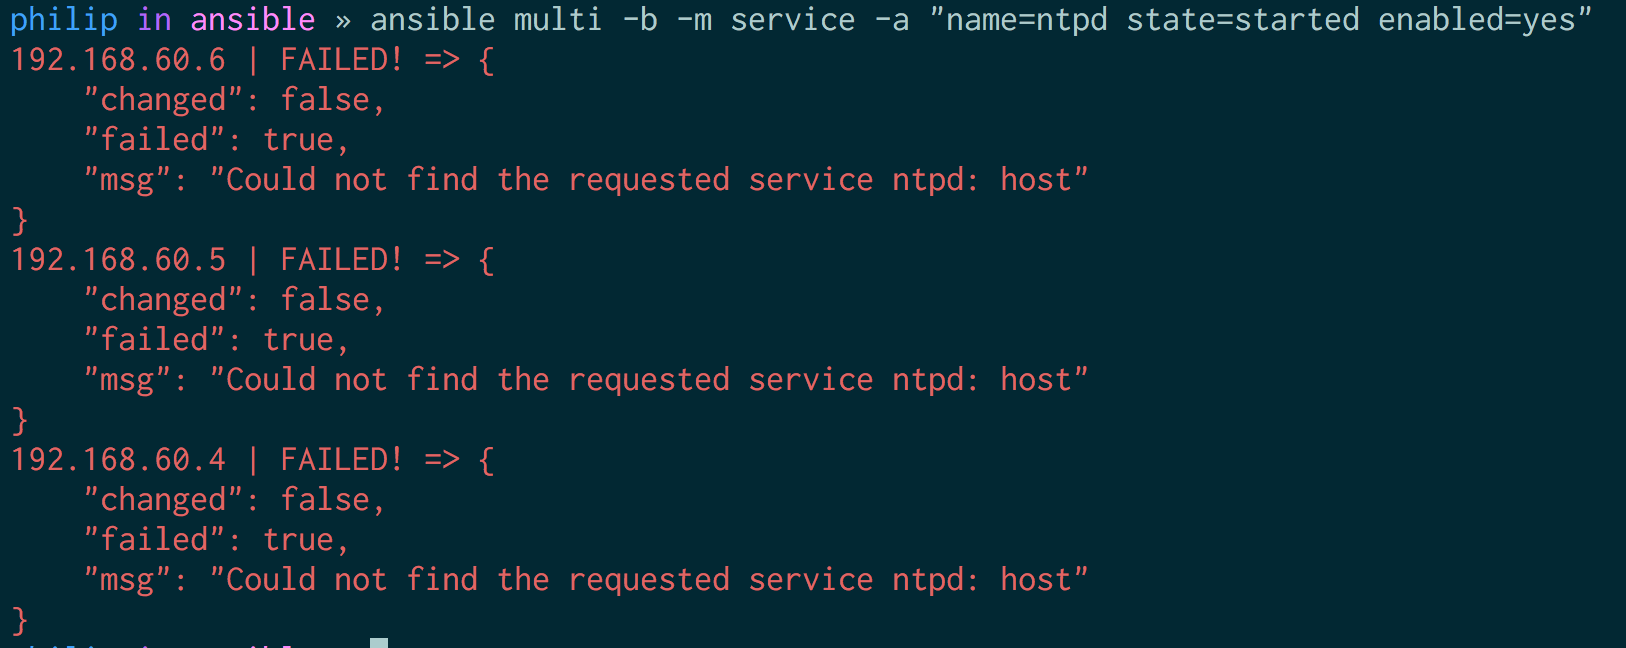 Ansible's service module failing for Ubuntu for 'ntpd' service